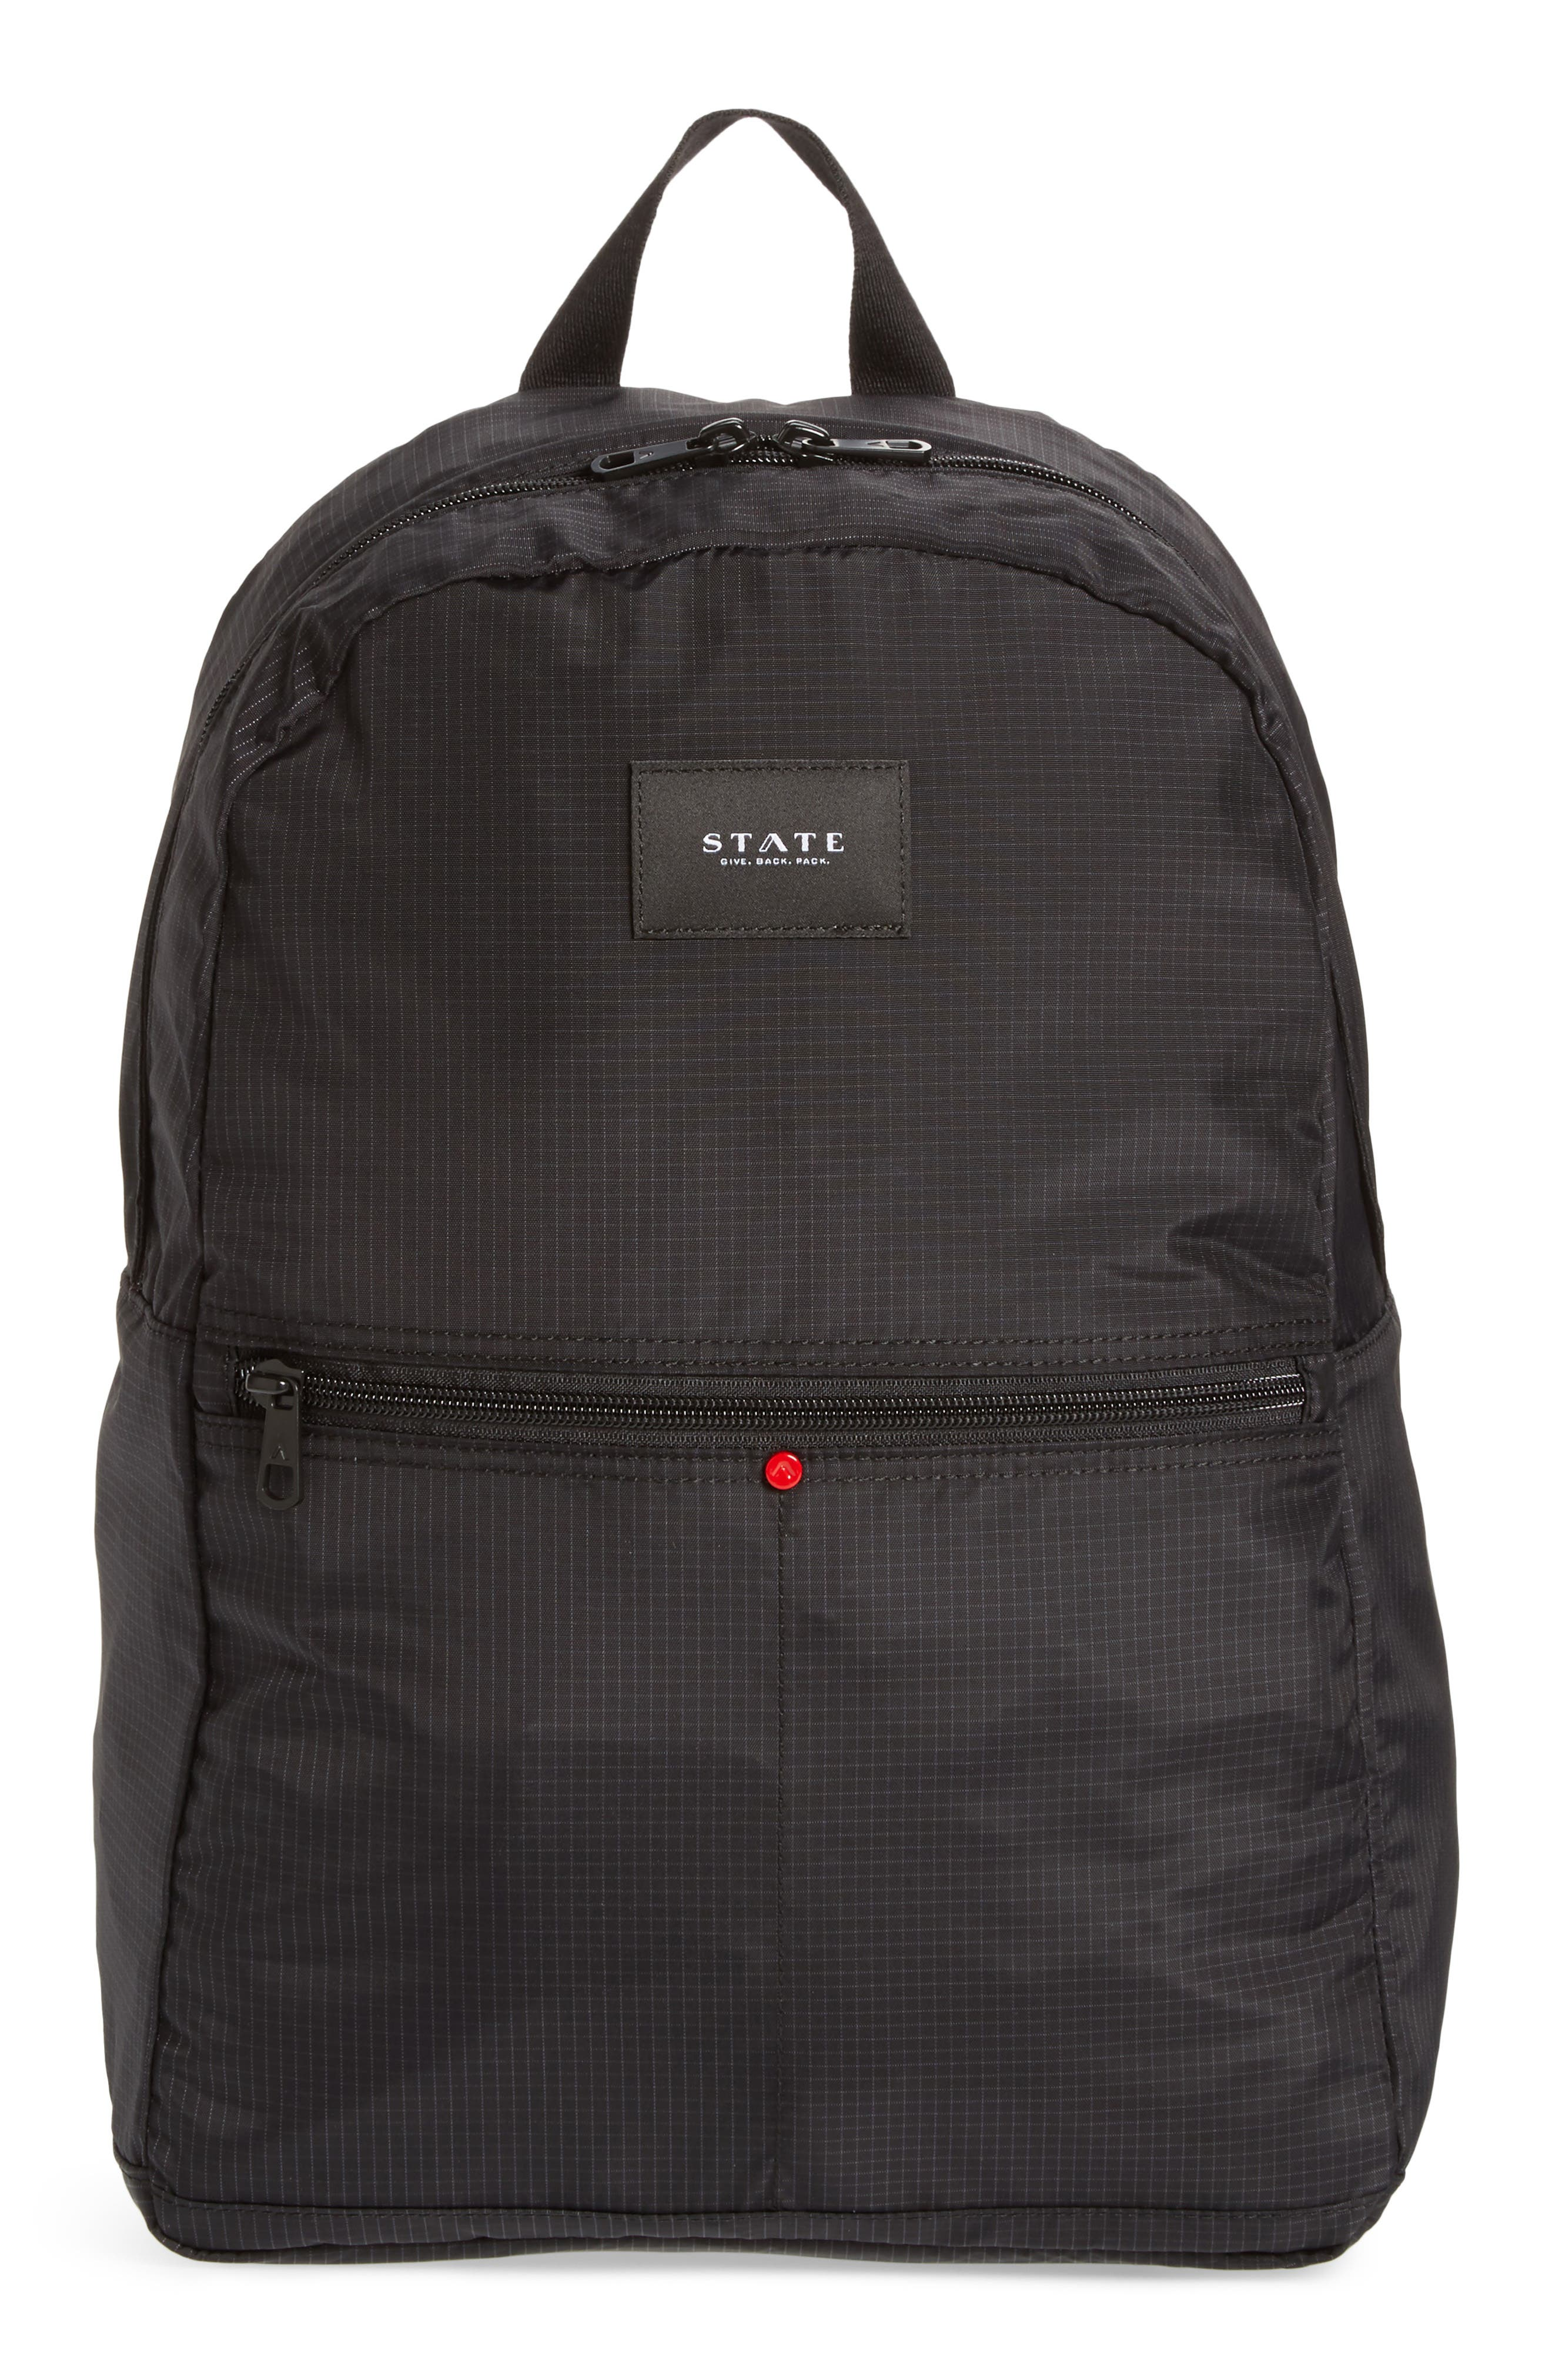 STATE BAGS STATE Wyckoff Marshall Laptop Ripstop Backpack